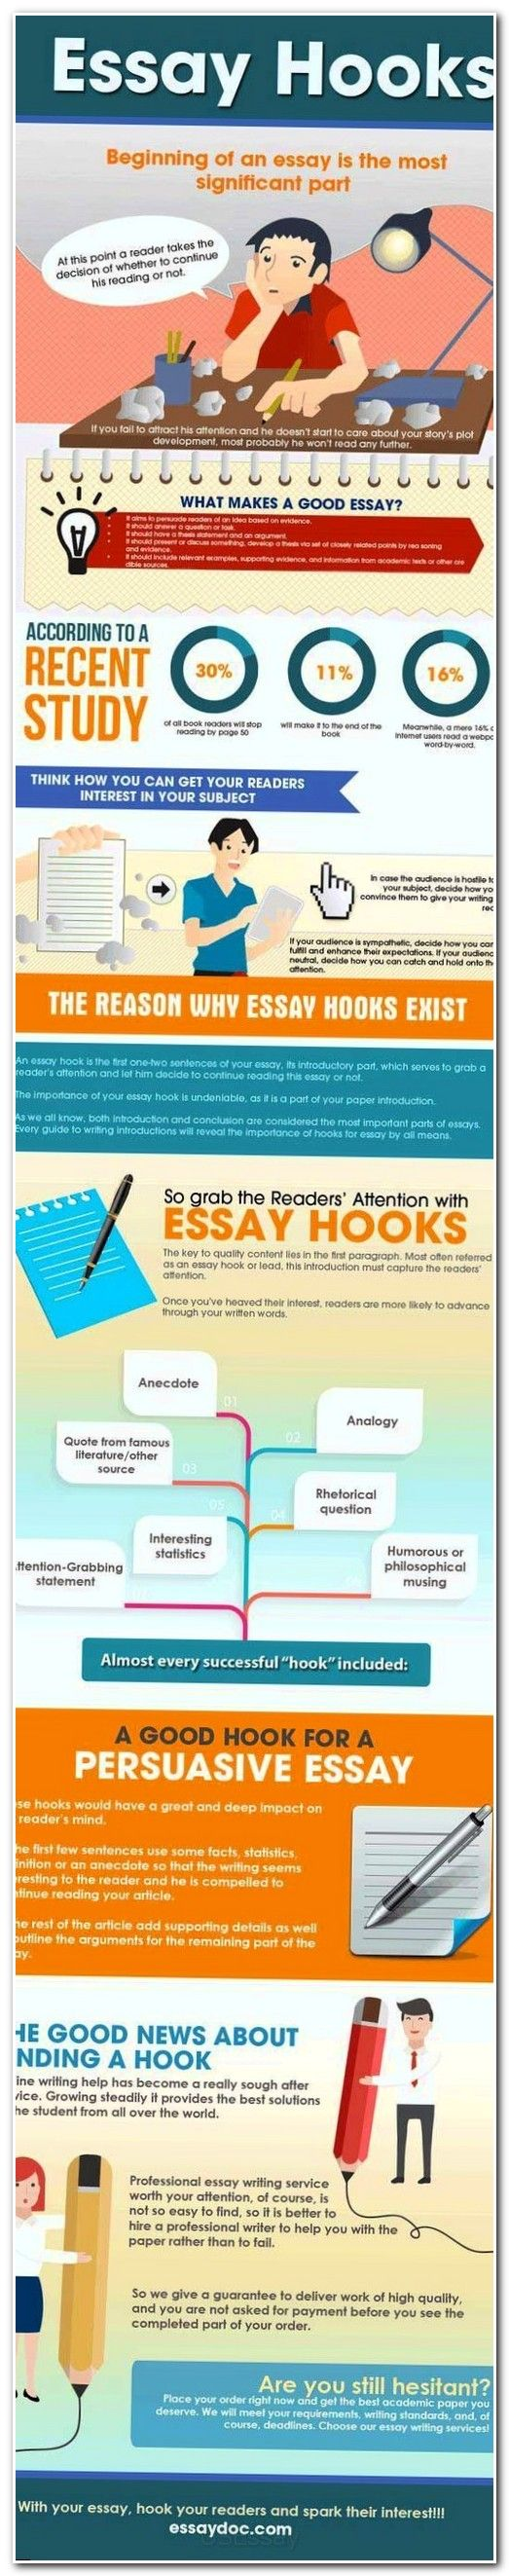 #essay #essayuniversity how to write a dissertation methodology chapter, writing cause and effect paragraph, what does it mean to be a leader essay, personal essay examples, apa format of website, argumentative essays examples for students, persuasive story examples, essay about myself example, service writer duties, paragraph of comparison and contrast example, essay maker online free, introduction of thesis example, how to write a research thesis statement, sample short story essays, what…